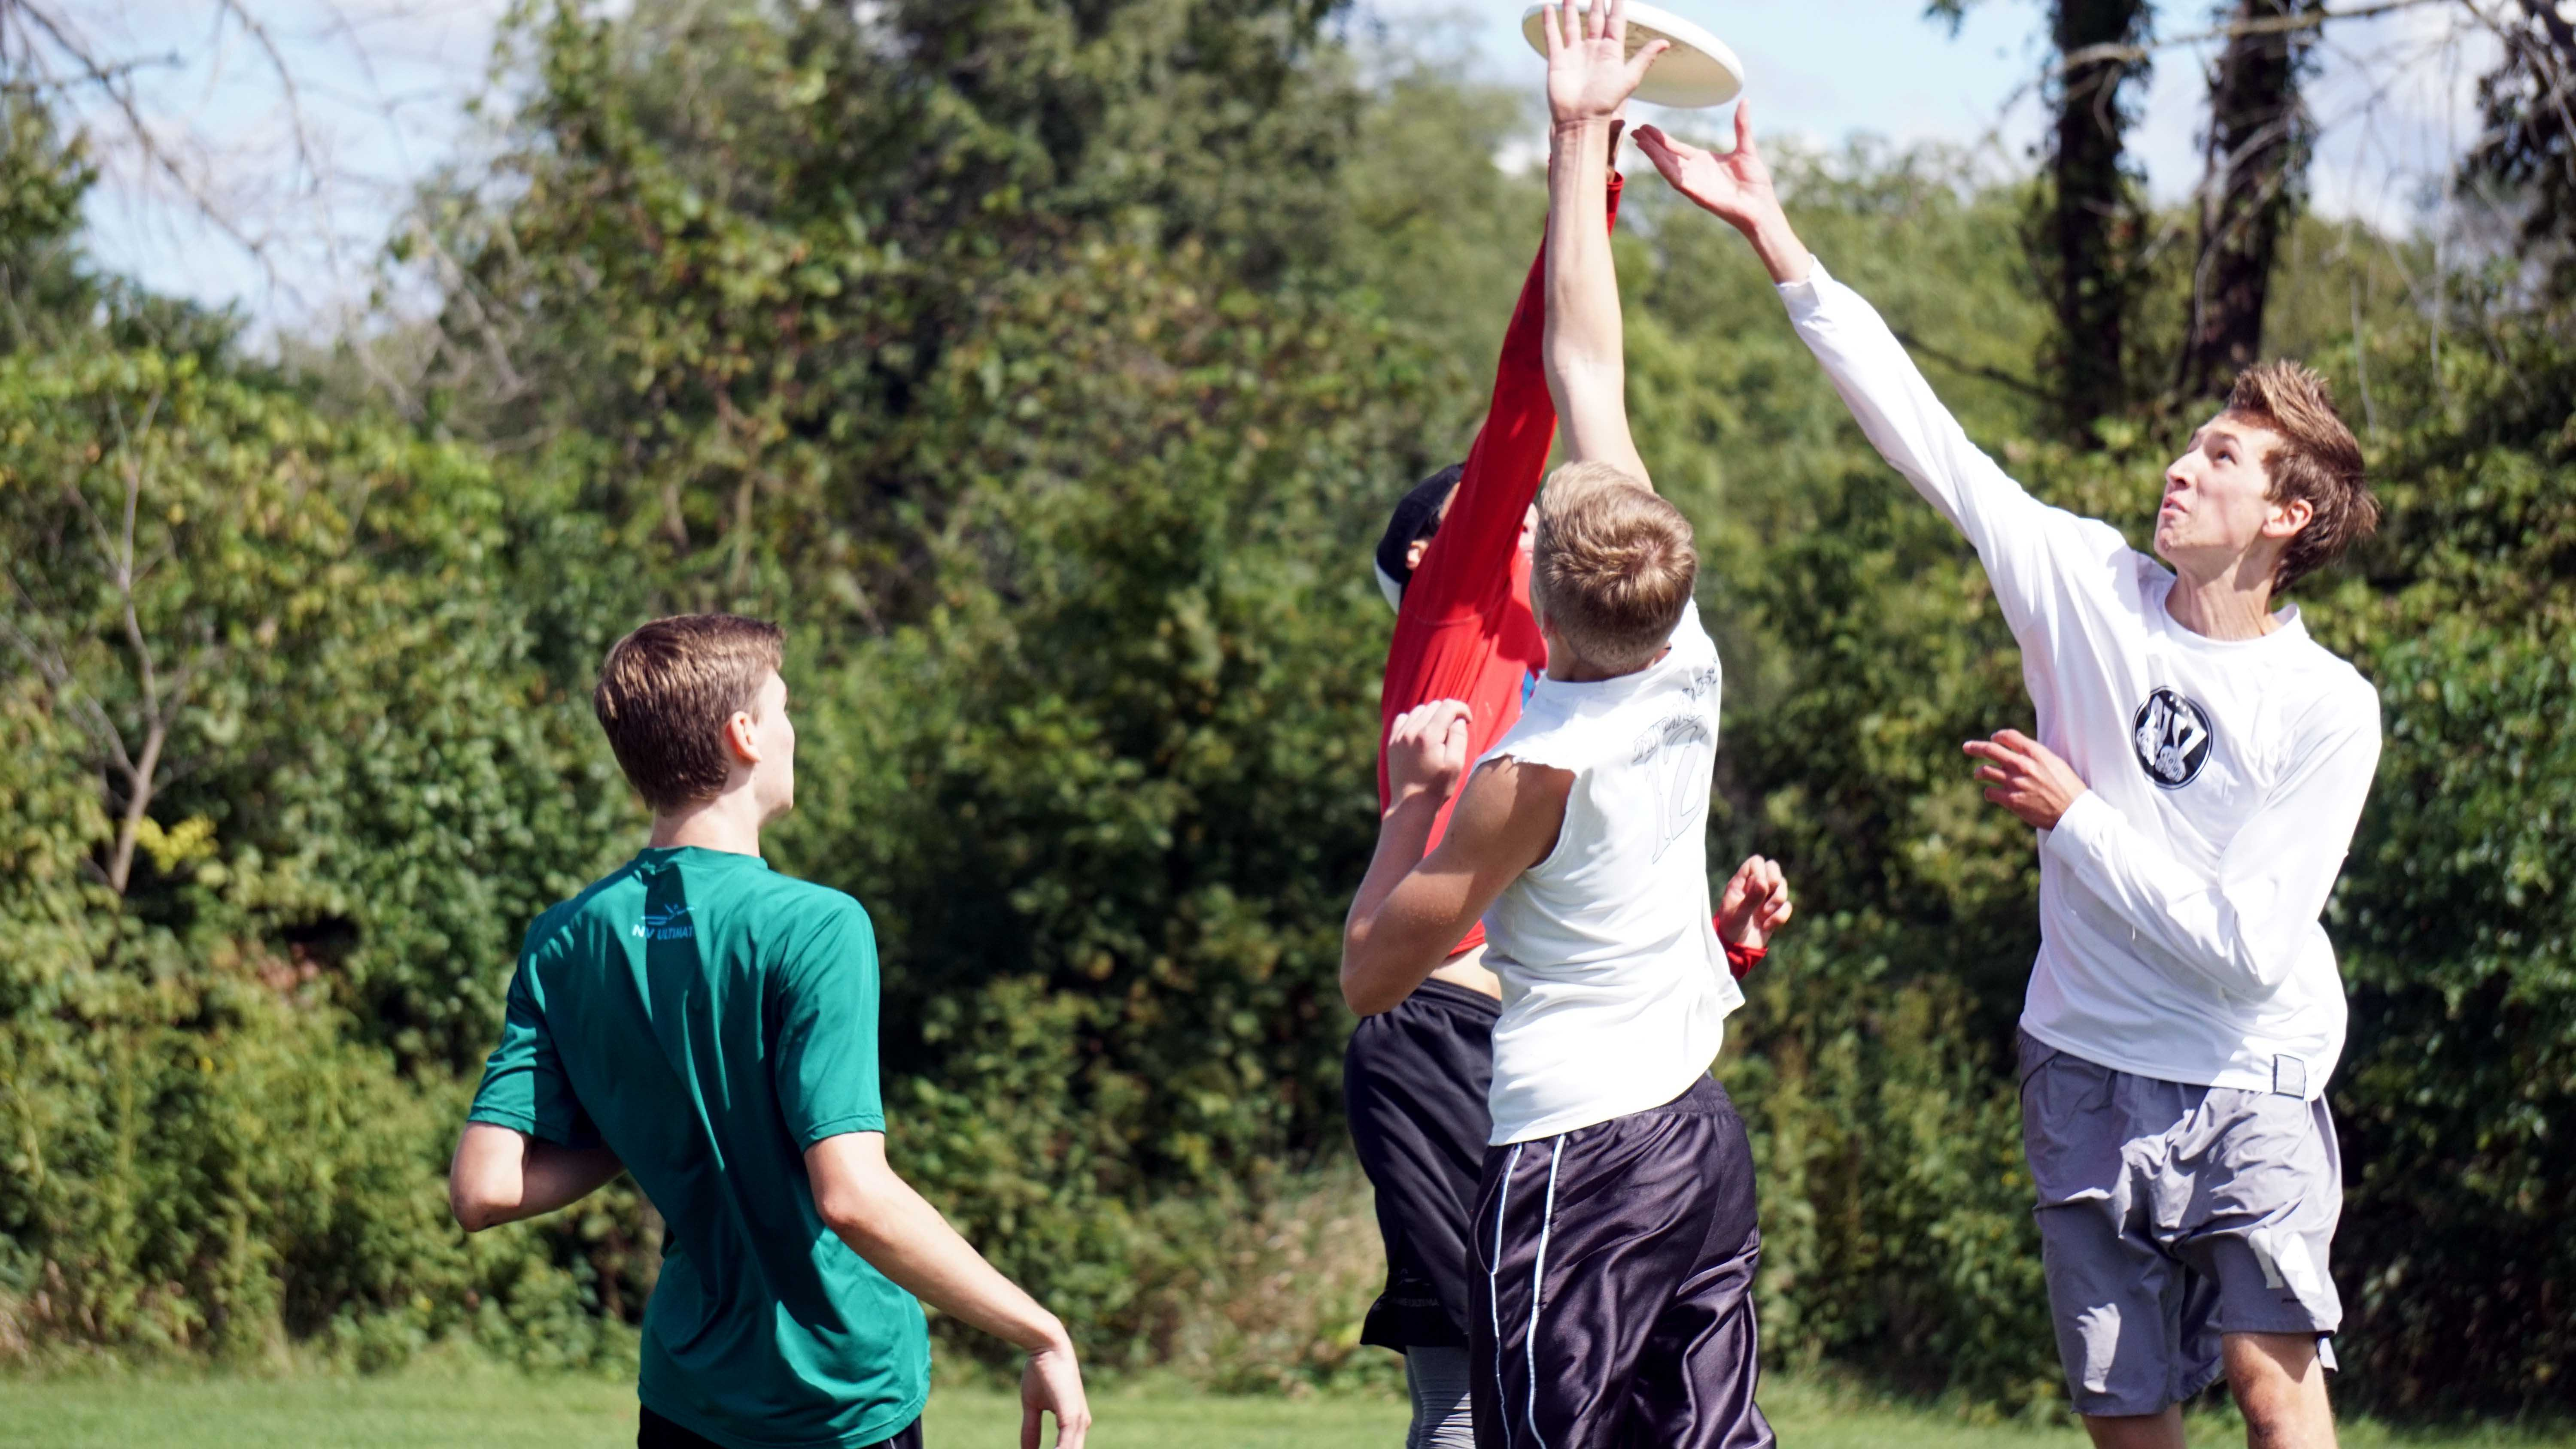 A group of players jump for the disc during an Ultimate Frisbee game at Knock Knolls Park in Naperville, Ill on Sept. 12.